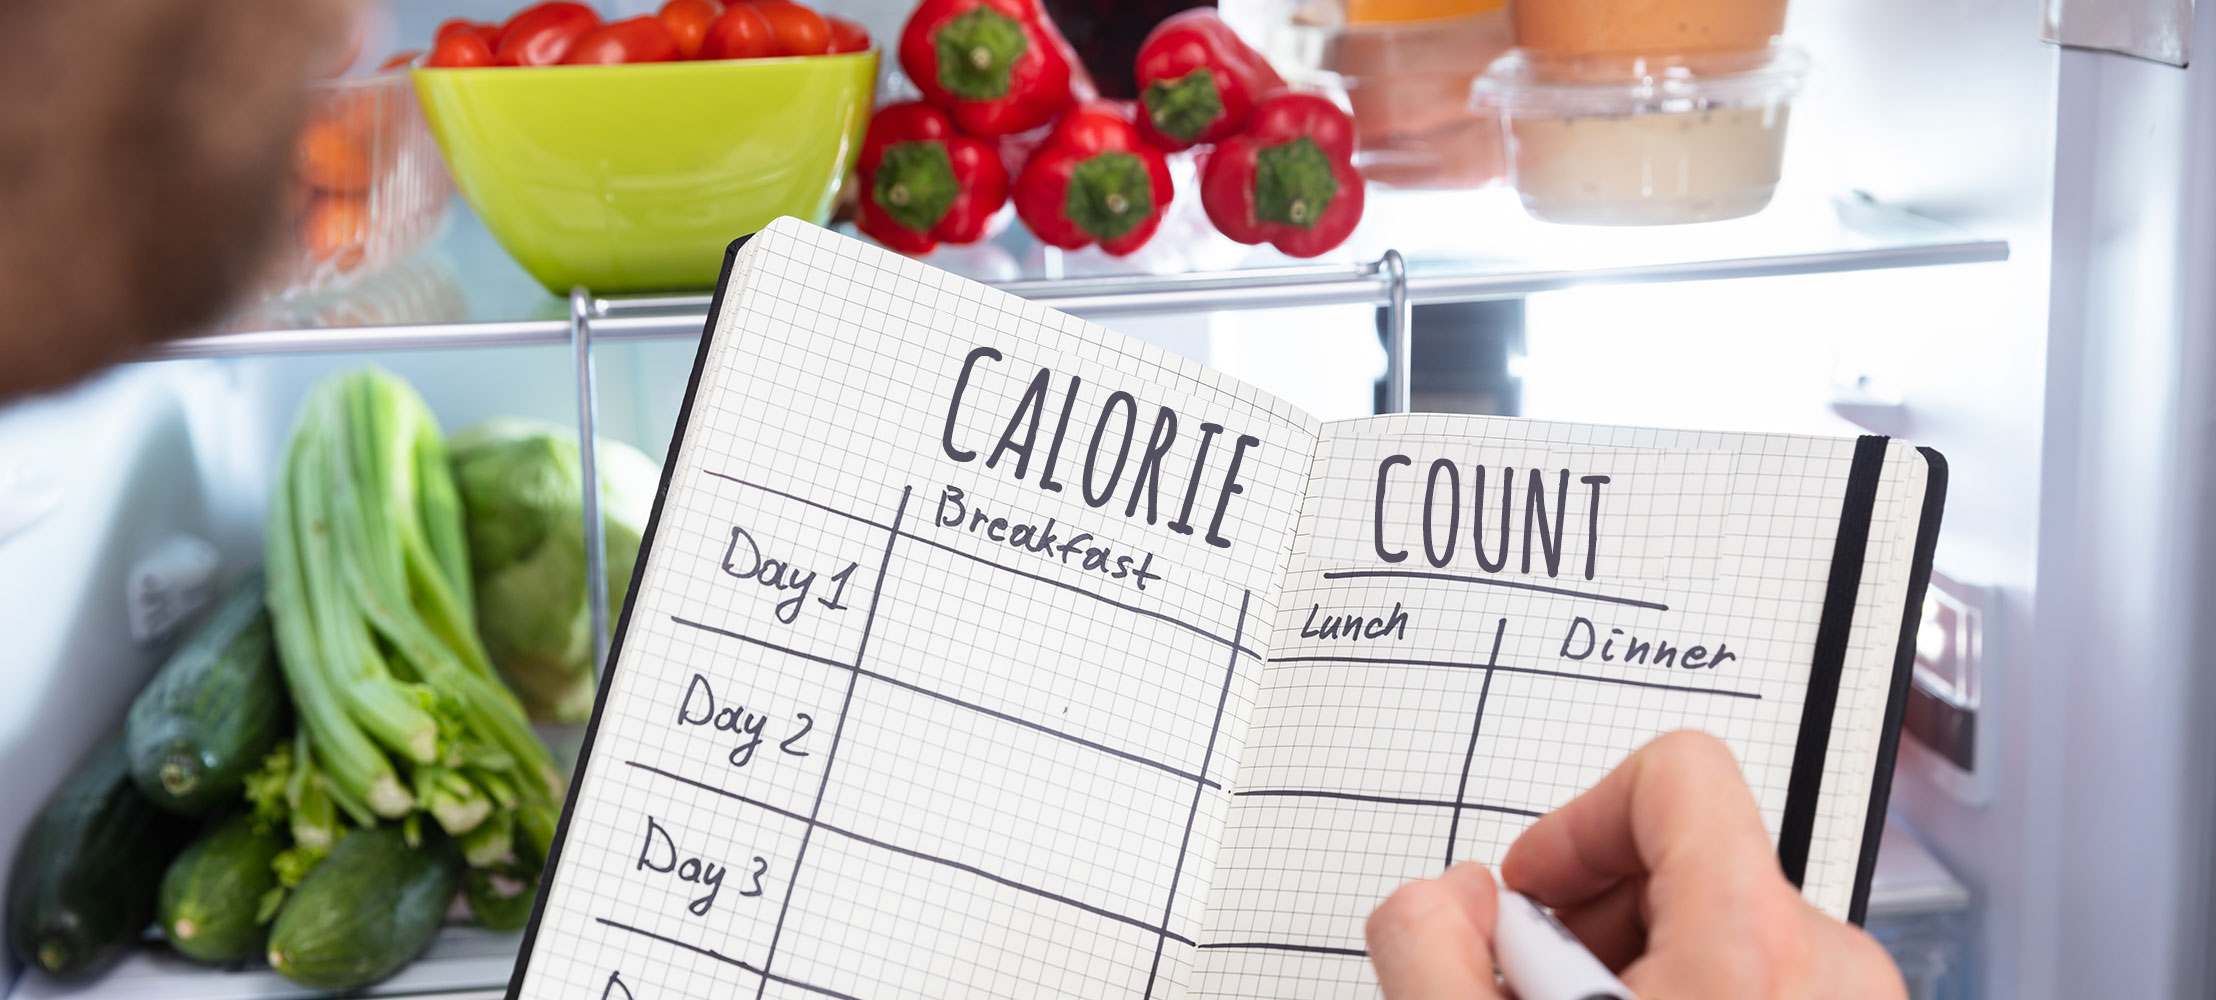 Calories: How much is too much?